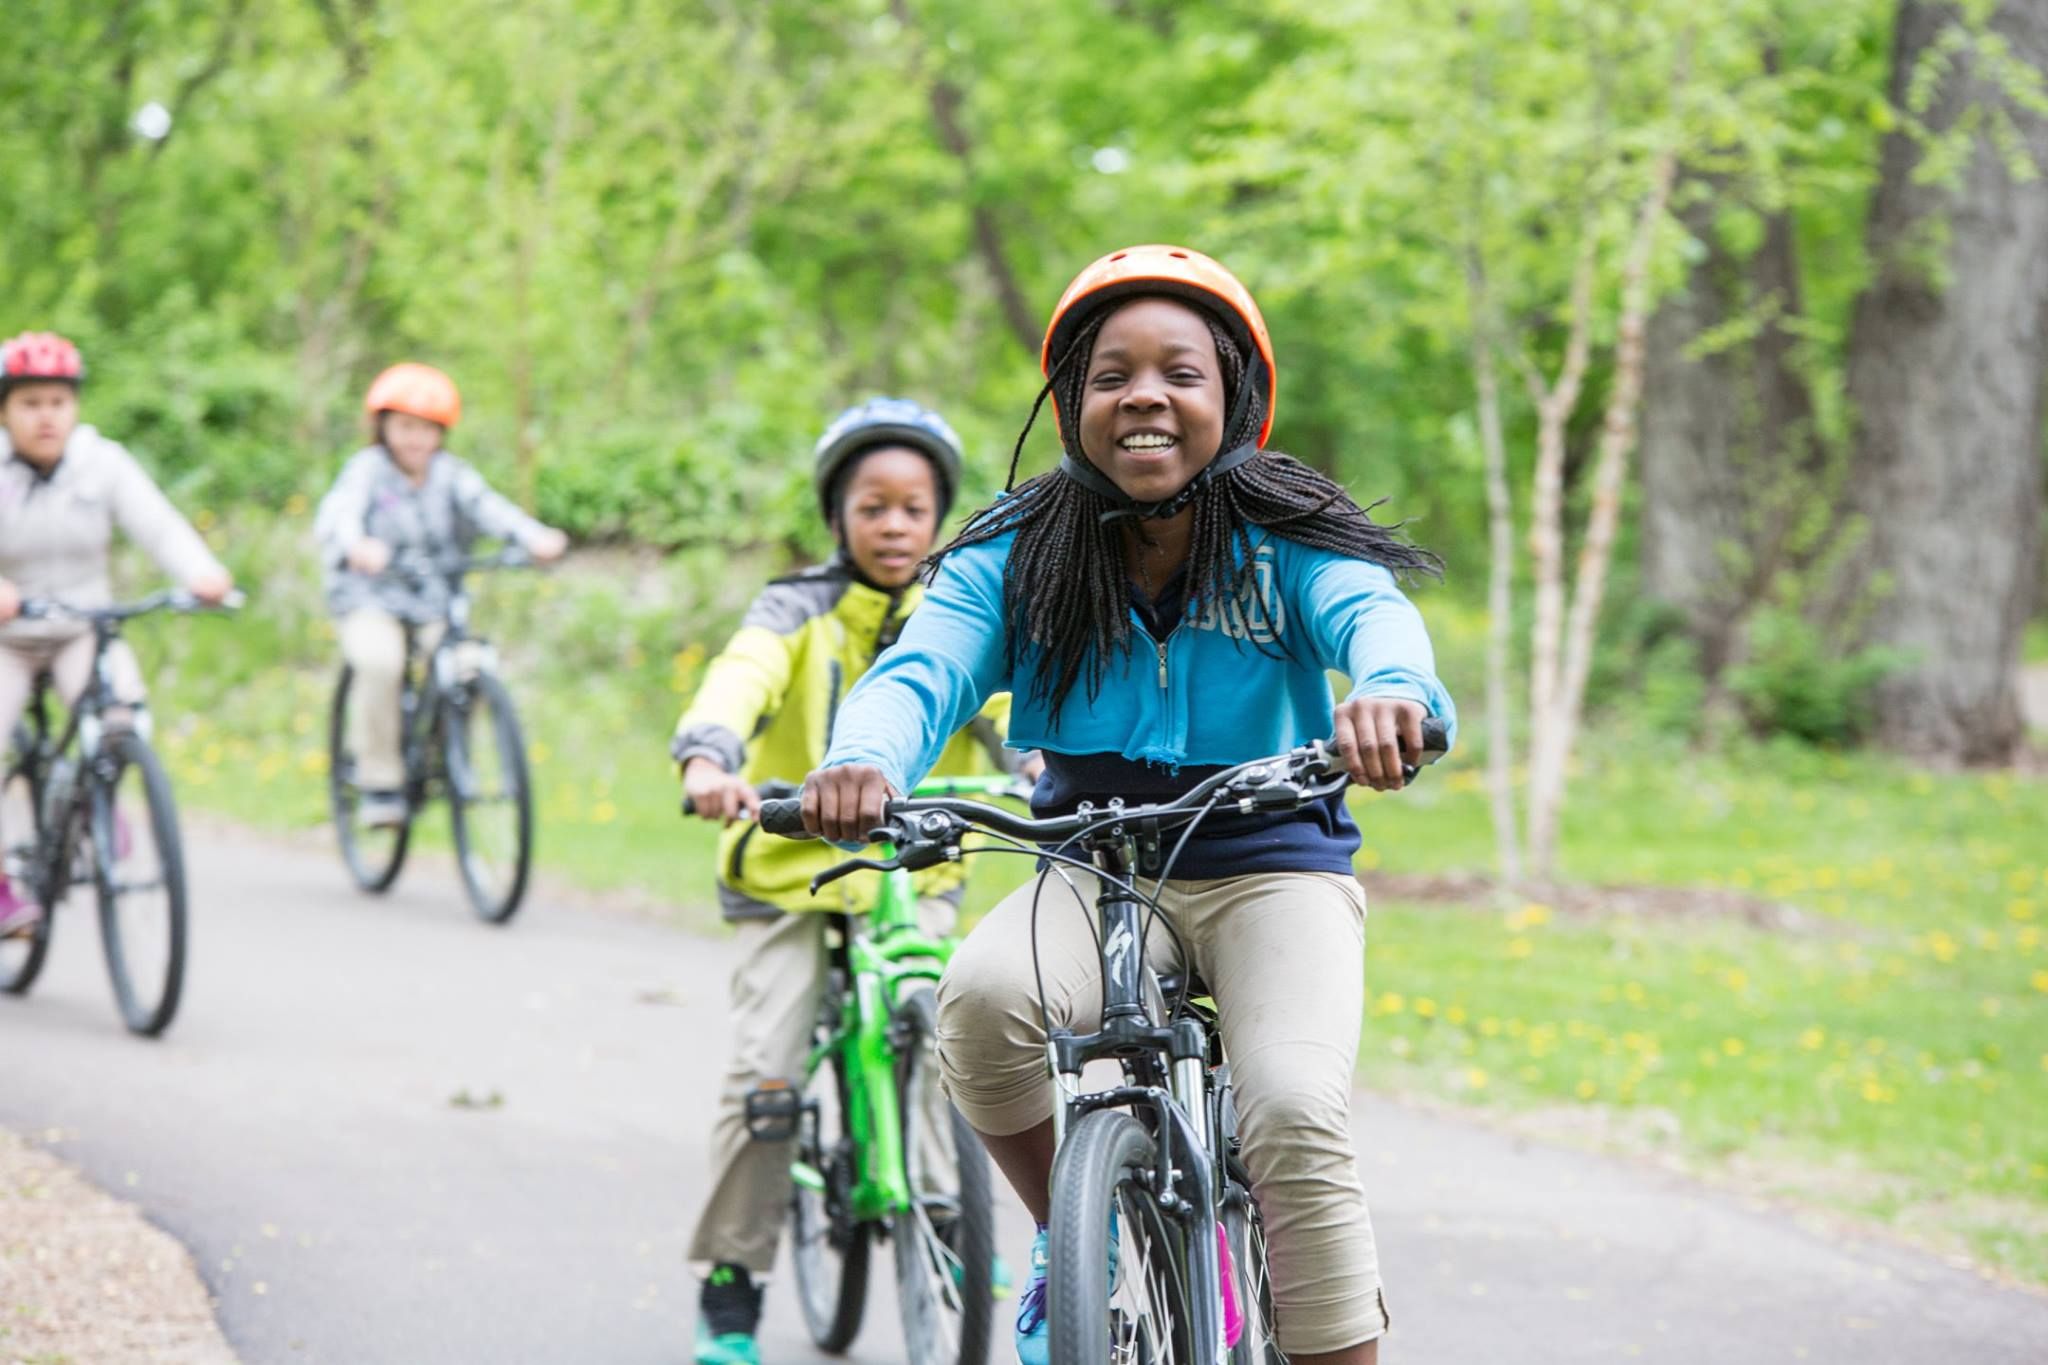 A child wearing a helmet smiles and pedals a bike. There are other children riding bikes in the background.